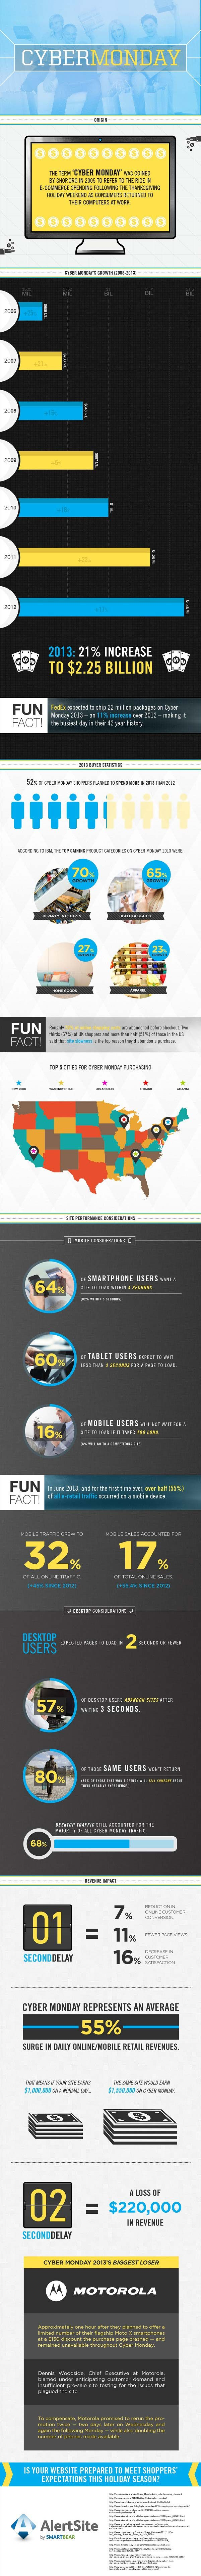 71 best INTERNET Infographics images on Pinterest | Infographic ...